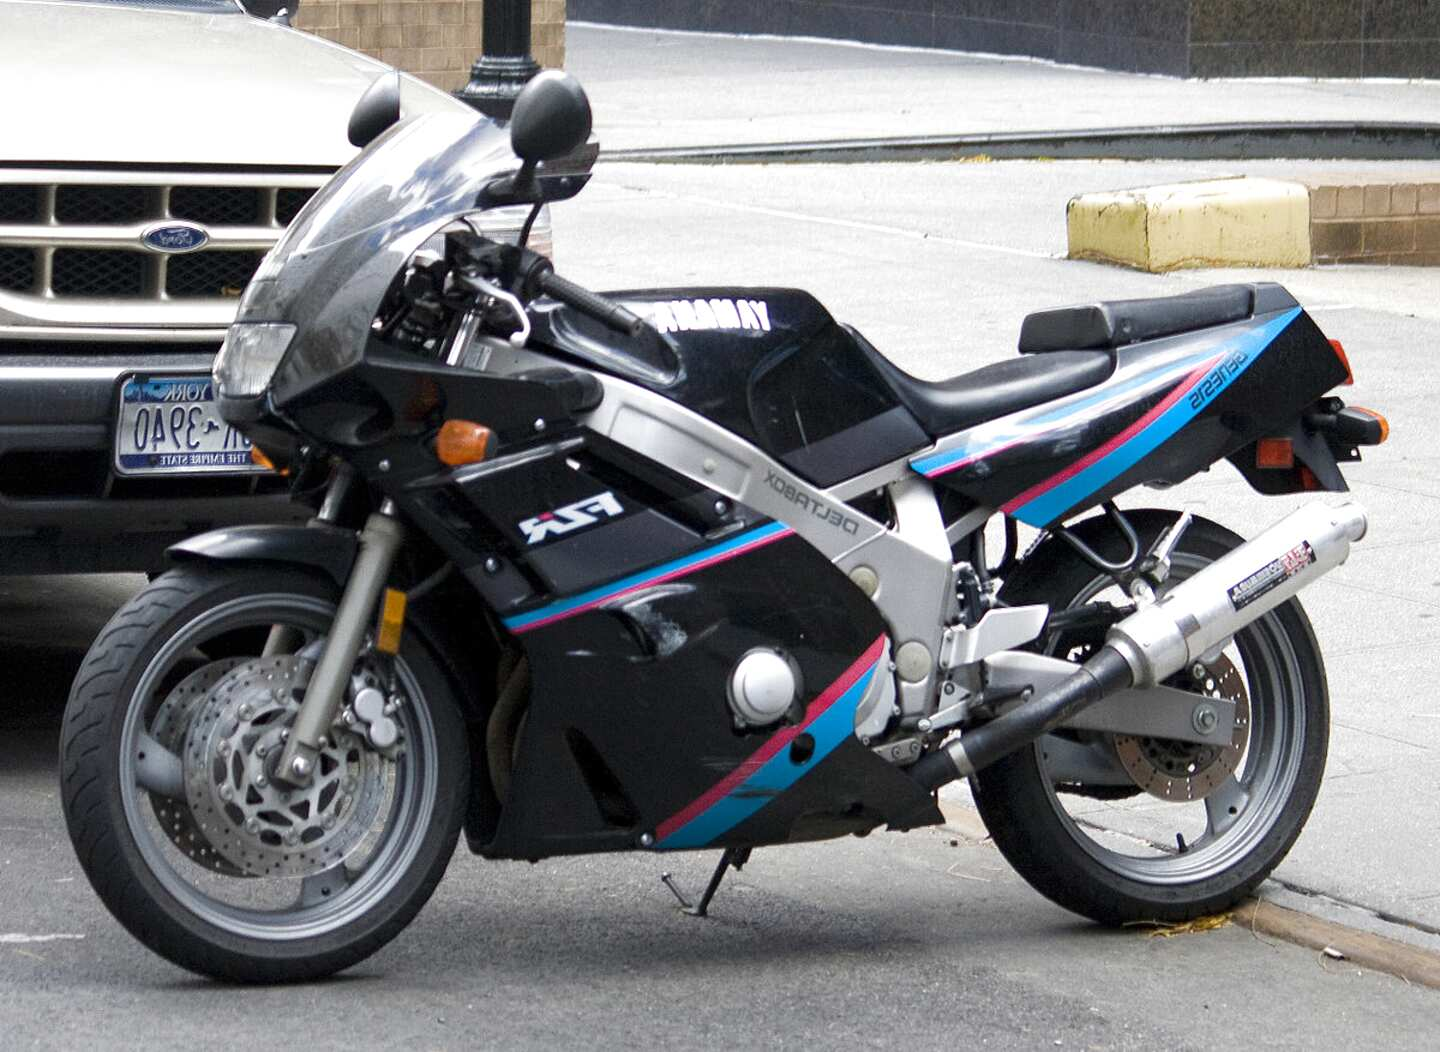 fzr 600 3he for sale